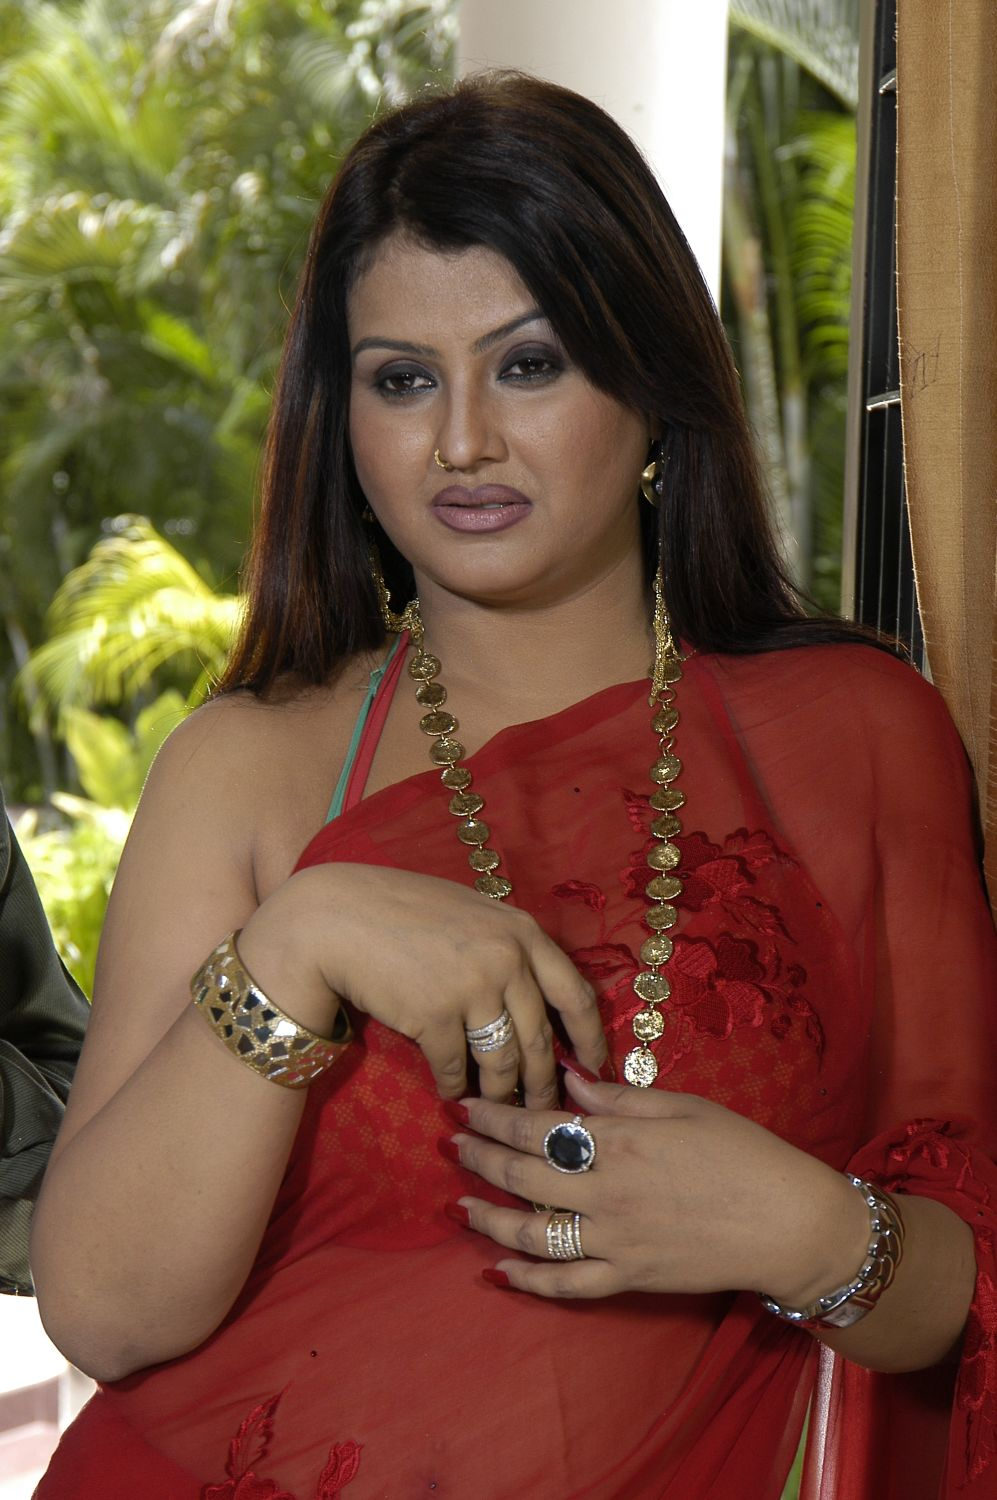 Kushboo fakes and nude picture naked